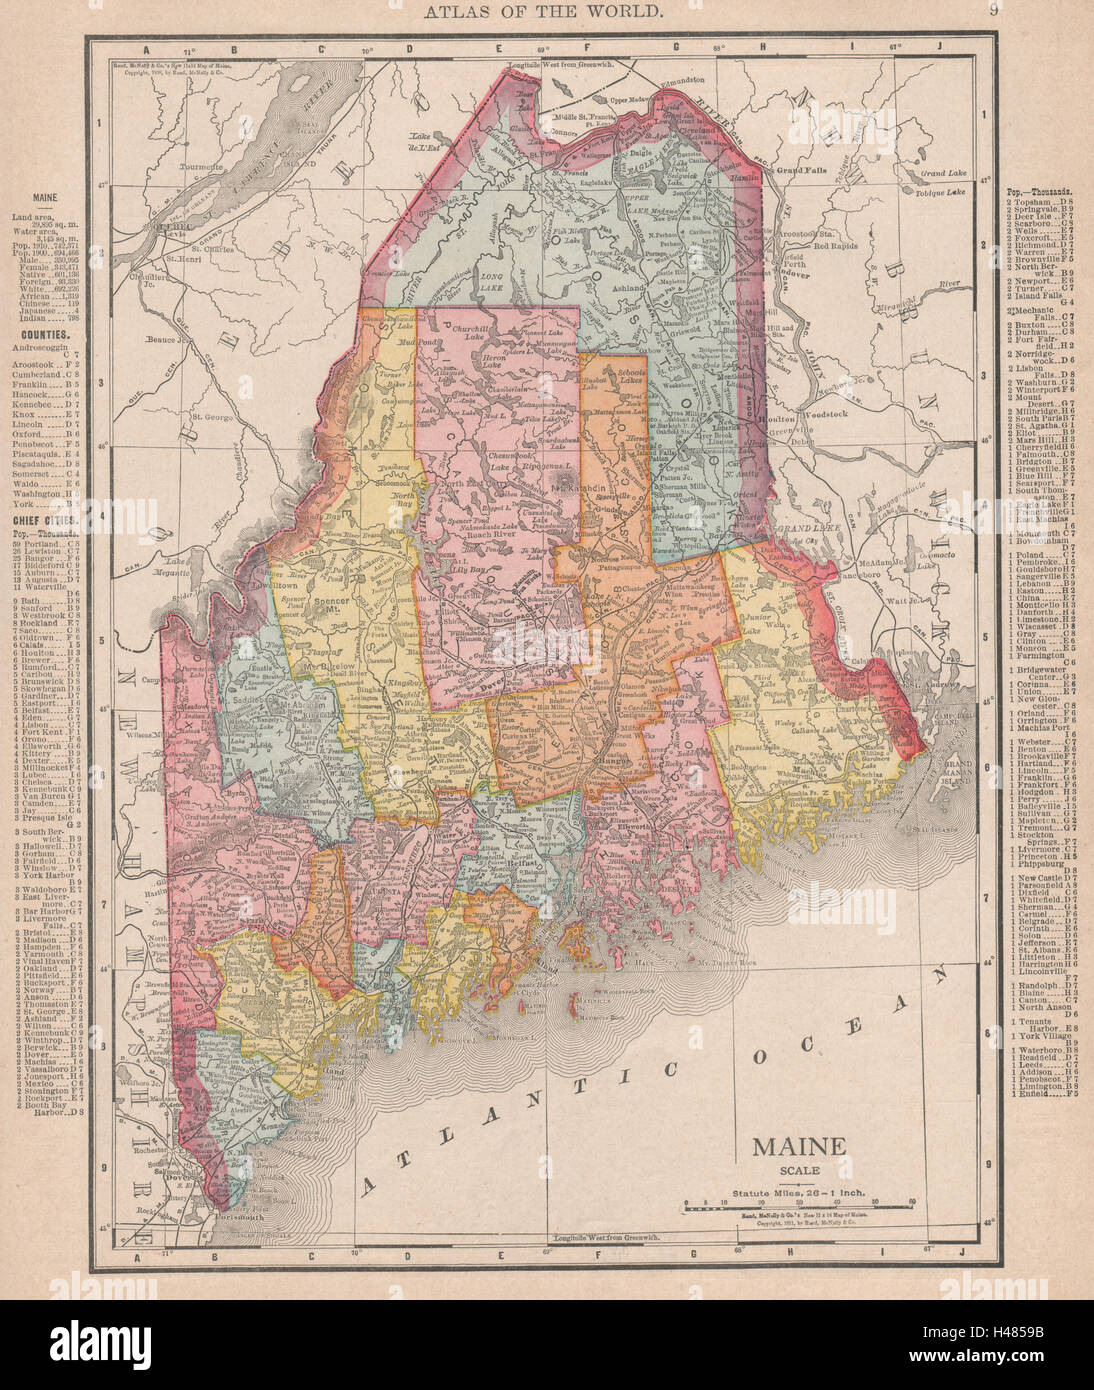 Maine state map showing counties. RAND MCNALLY 1912 old ... on maine colleges map, maine regions map, state of maine map, maine towns map, maine state road map printable, maine mountains map, old maine map, maine lakes map, maine legislature map, maine political map, maine land ownership map, maine weather map, maine zip codes map, maine services map, maine real estate map, maine county, maine watersheds map, maine hospitals map, maine city map,